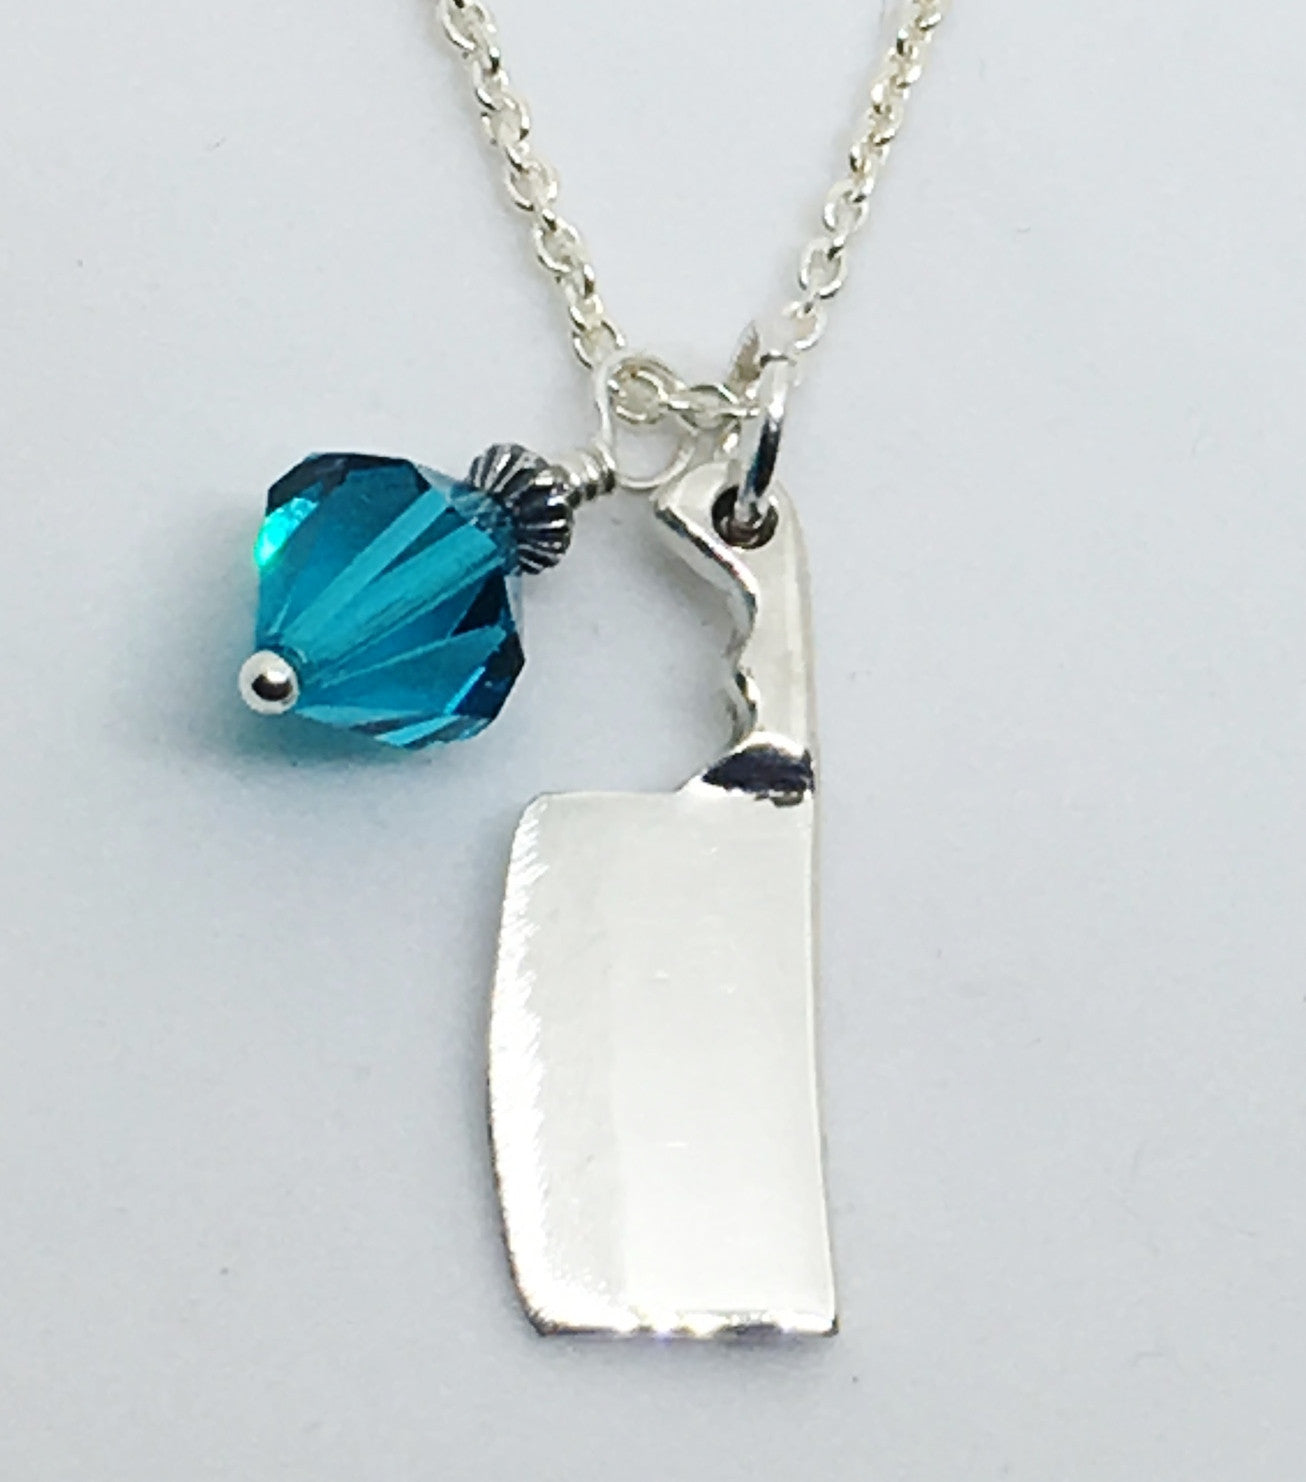 Chef's Cleaver Knife Pendant Necklace with Aqua Blue Swarovski Crystal Charm